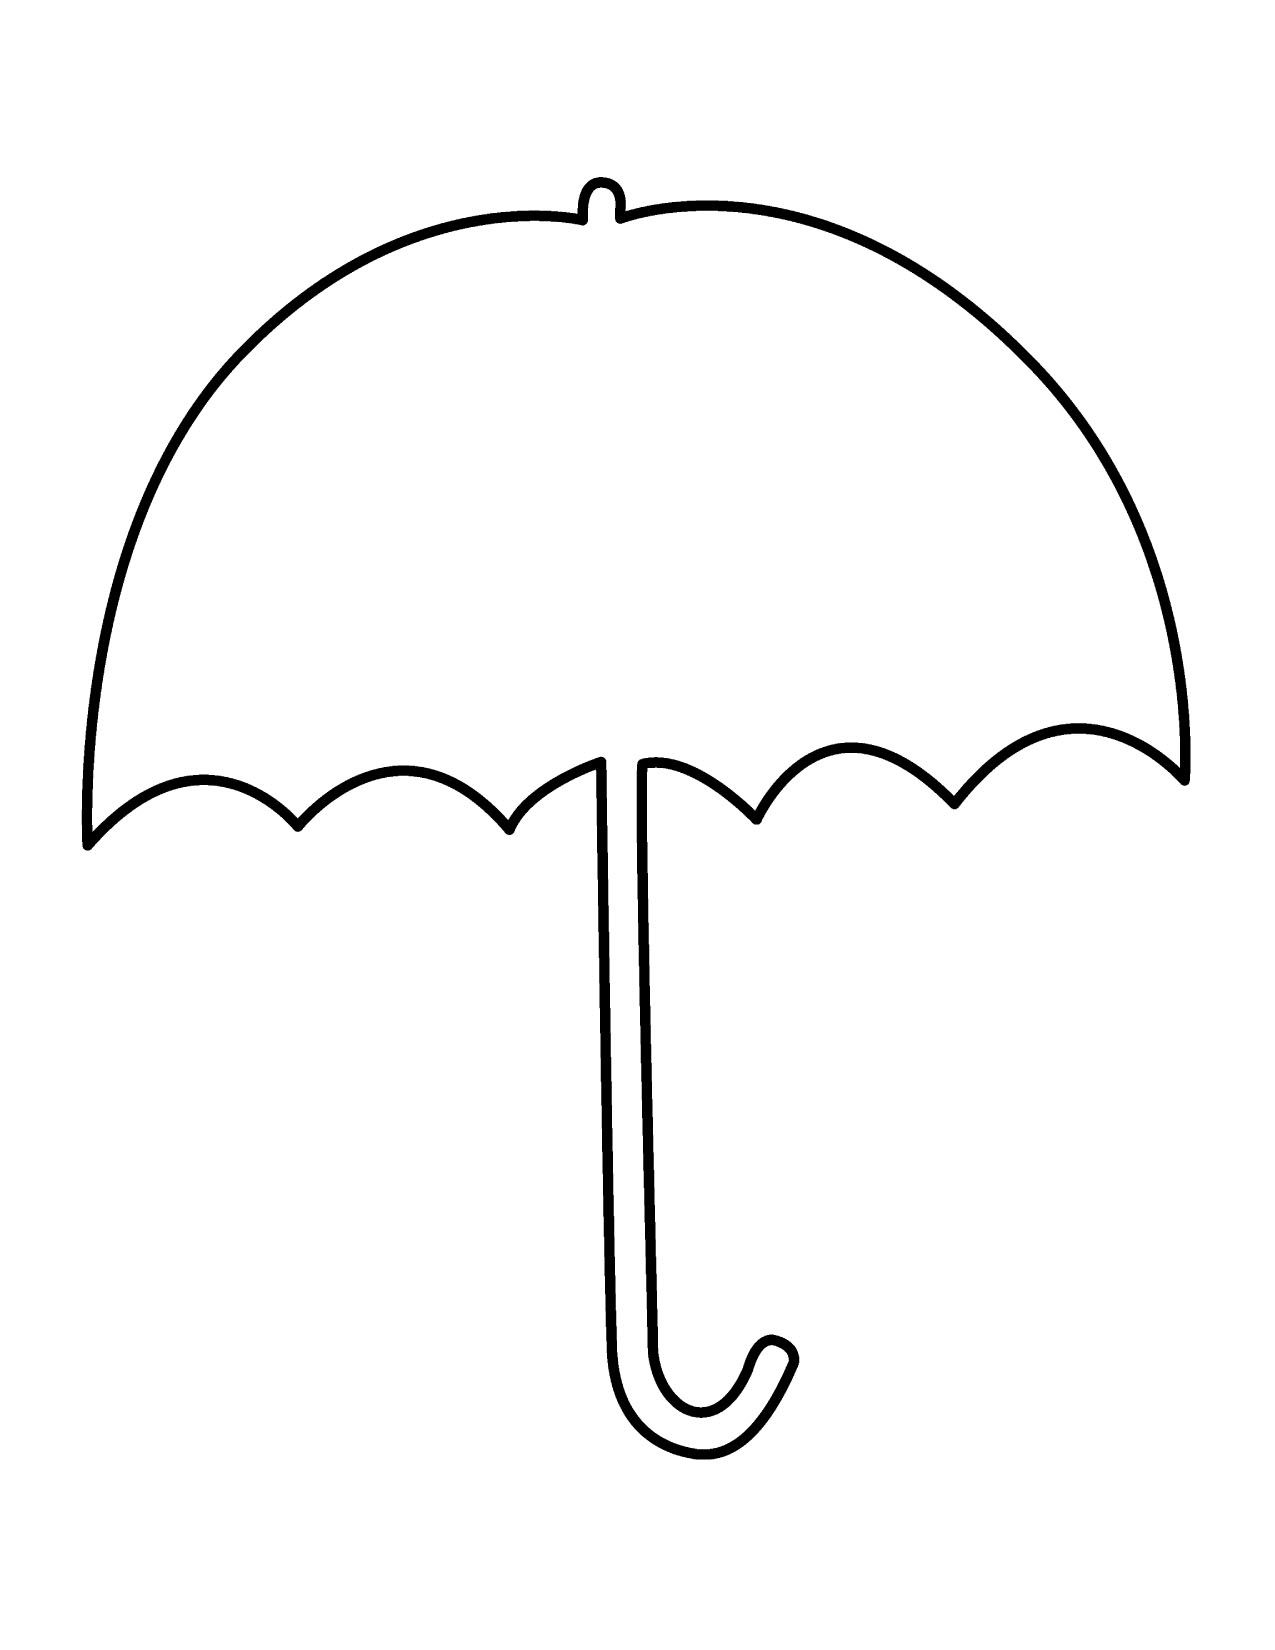 Umbrella Clipart : umbrella, clipart, Umbrella, Outline, Clipart, Panda, Images, Coloring, Page,, Template,